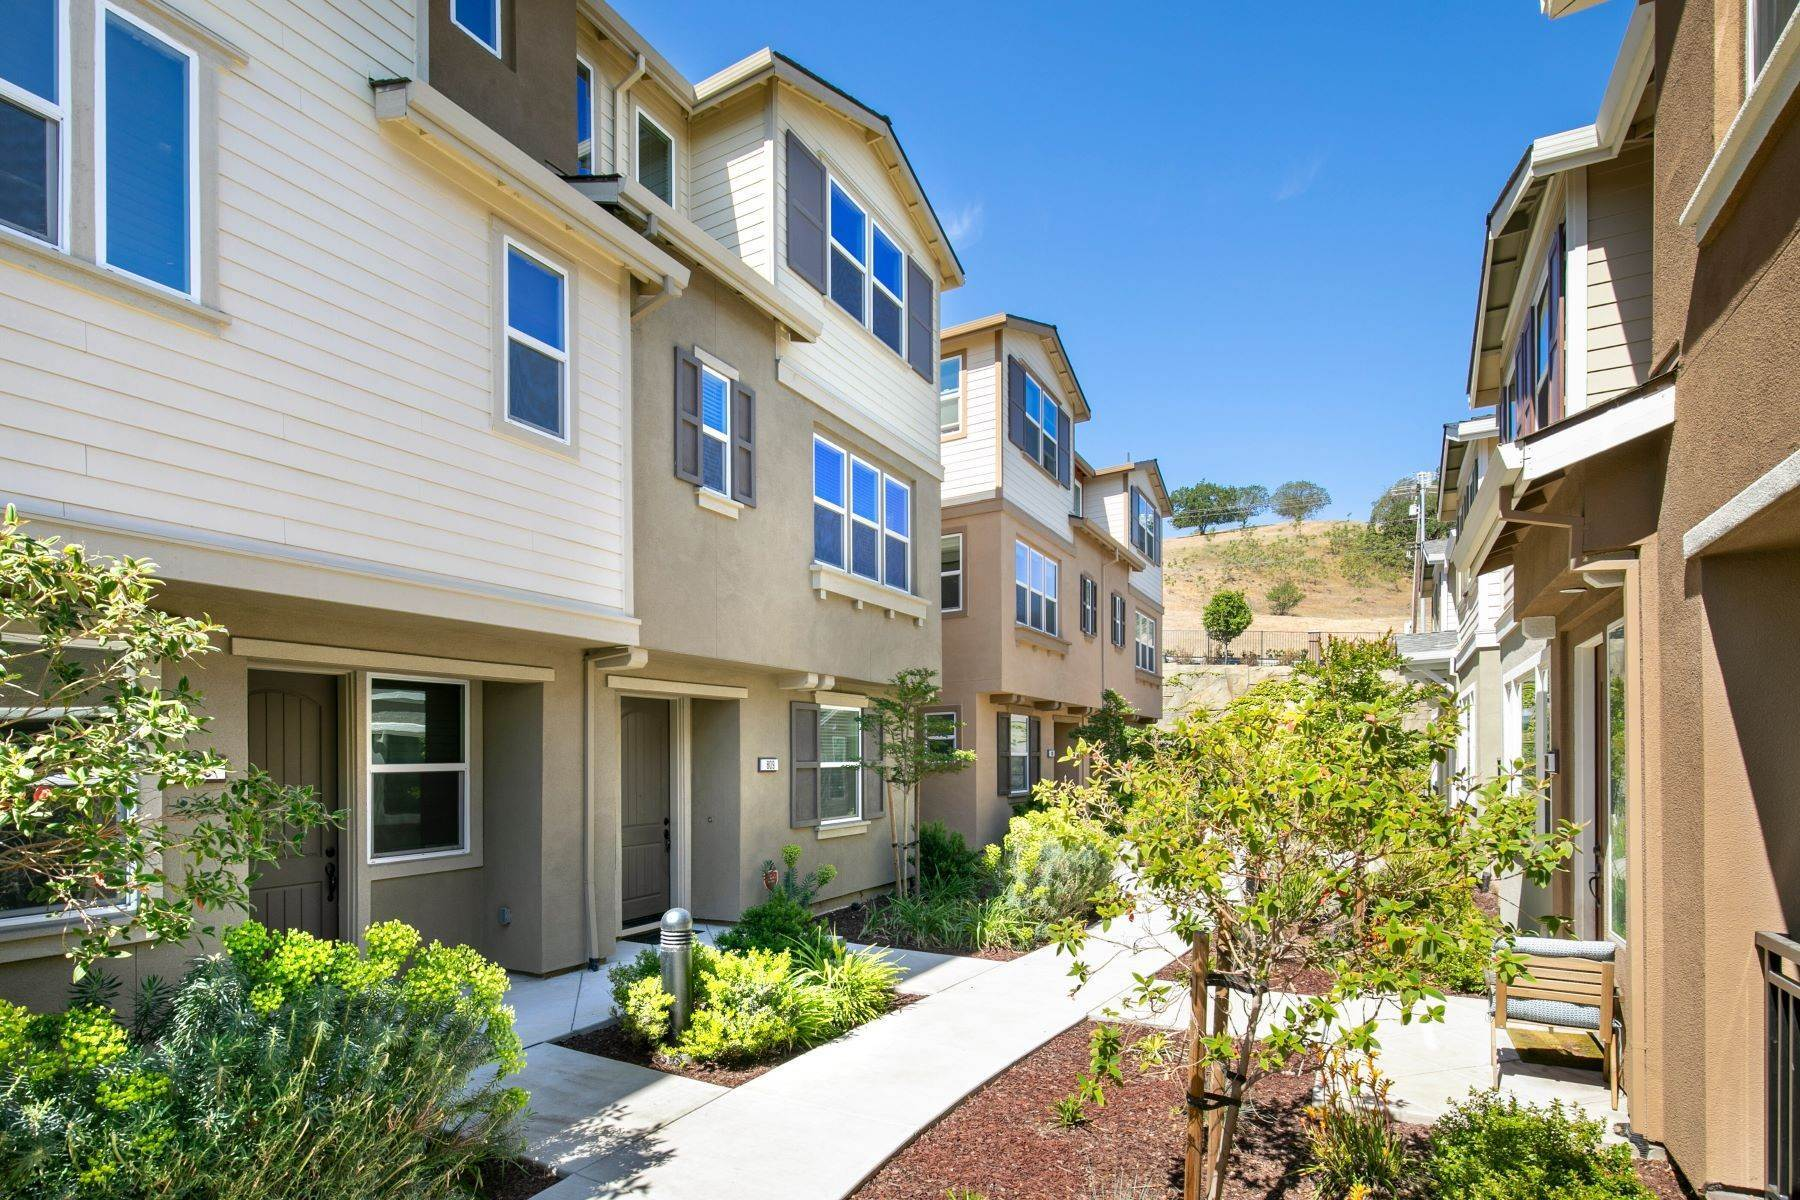 Property for Sale at Contemporary Townhome 809 Tierney Place Martinez, California 94553 United States